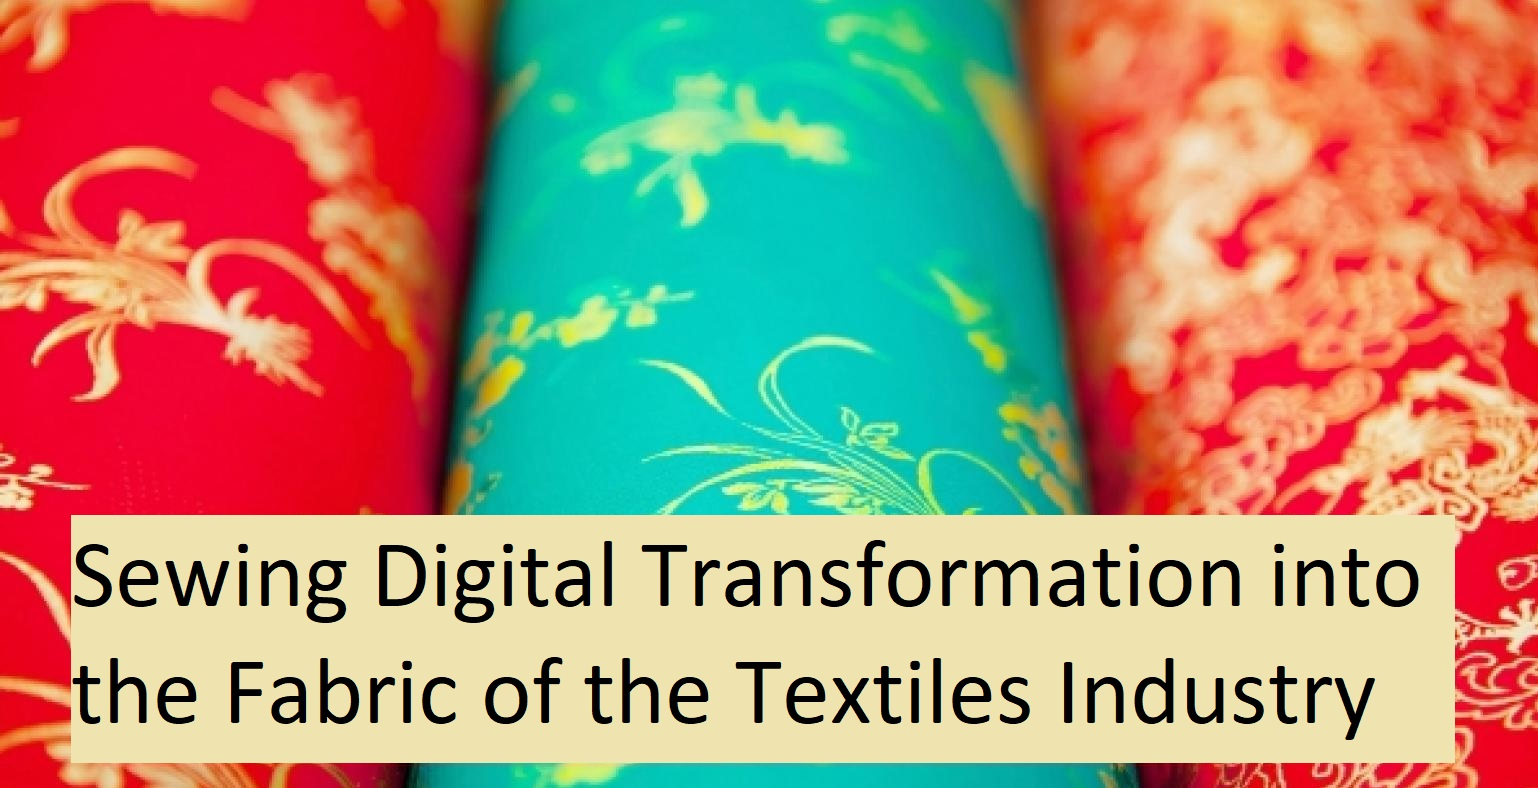 Click  here  to read comments from Stefan Weisenberger of SAP on the impact of Digital Technologies in the Fabric and Textiles Industry